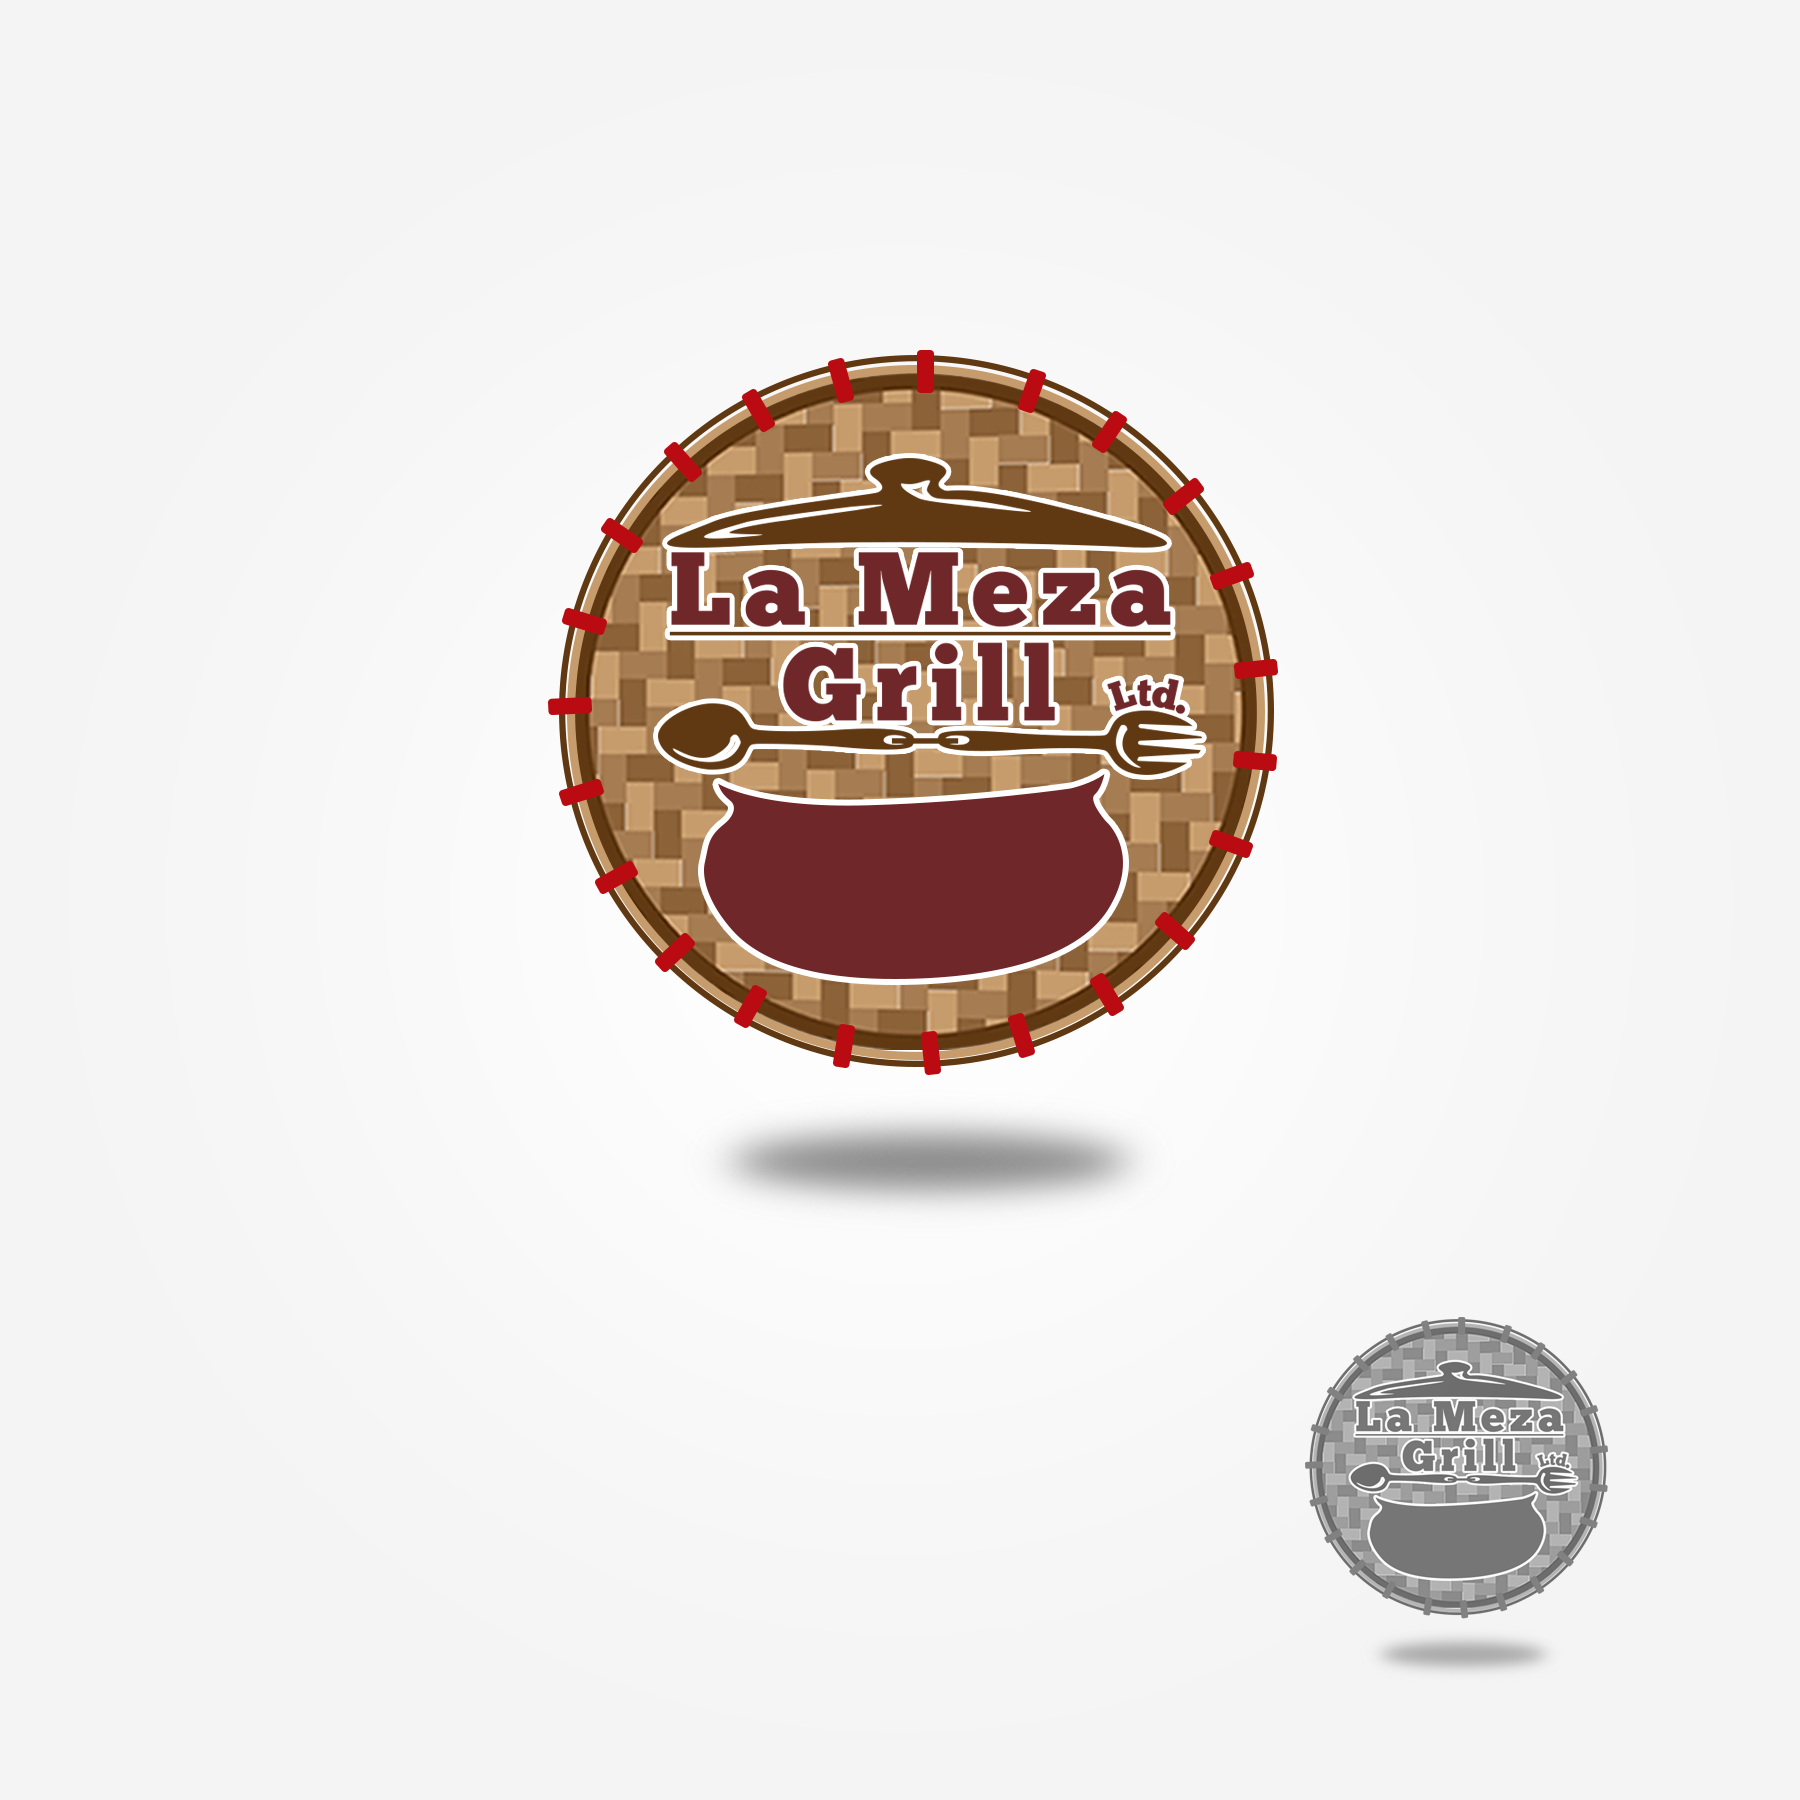 Logo Design by Lemuel Arvin Tanzo - Entry No. 80 in the Logo Design Contest Inspiring Logo Design for La Meza Grill Ltd..